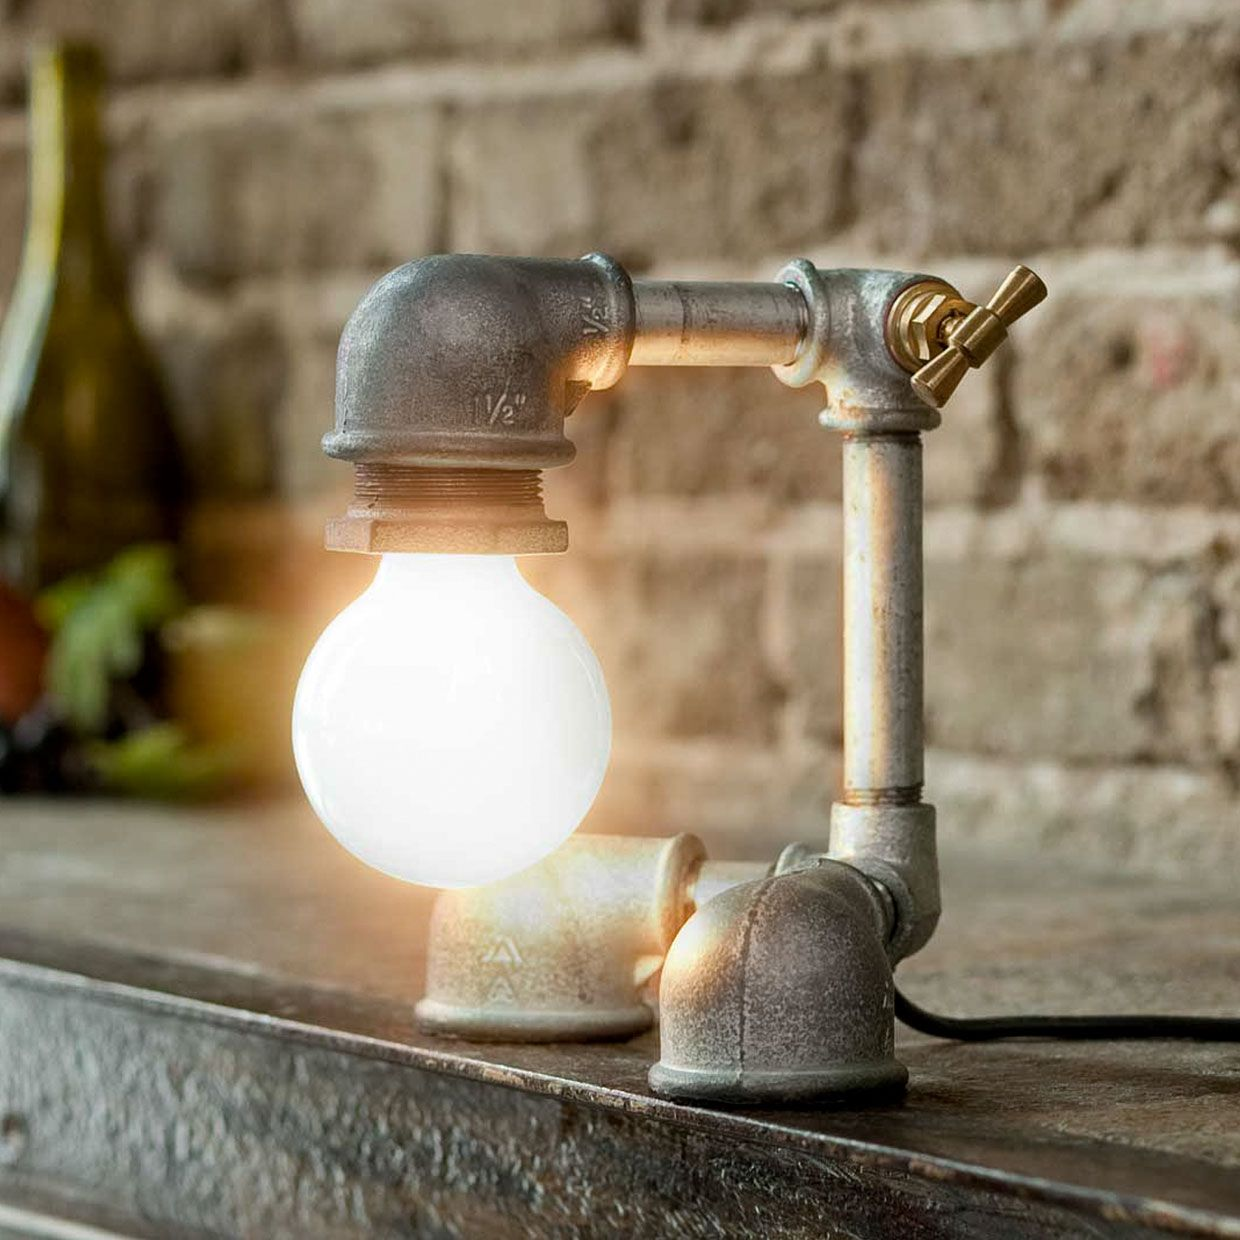 Incredible lamps made from old taps which use them as switches ...